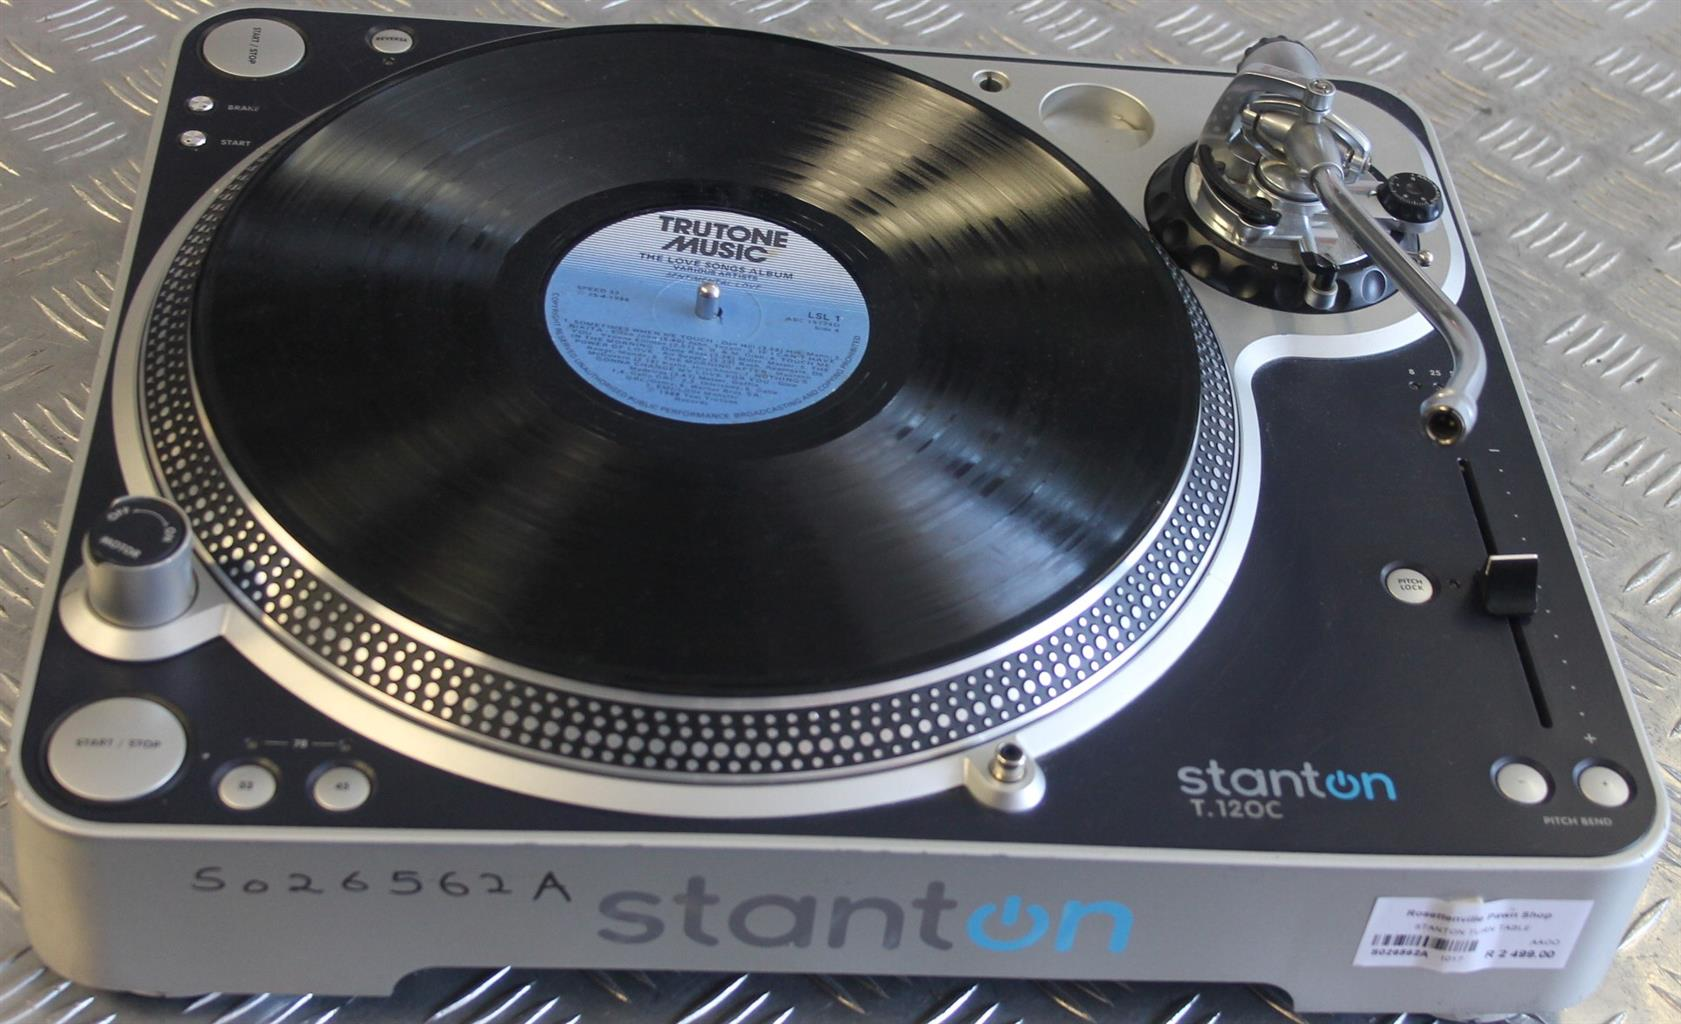 Stanton turntable S026562a #Rosettenvillepawnshop